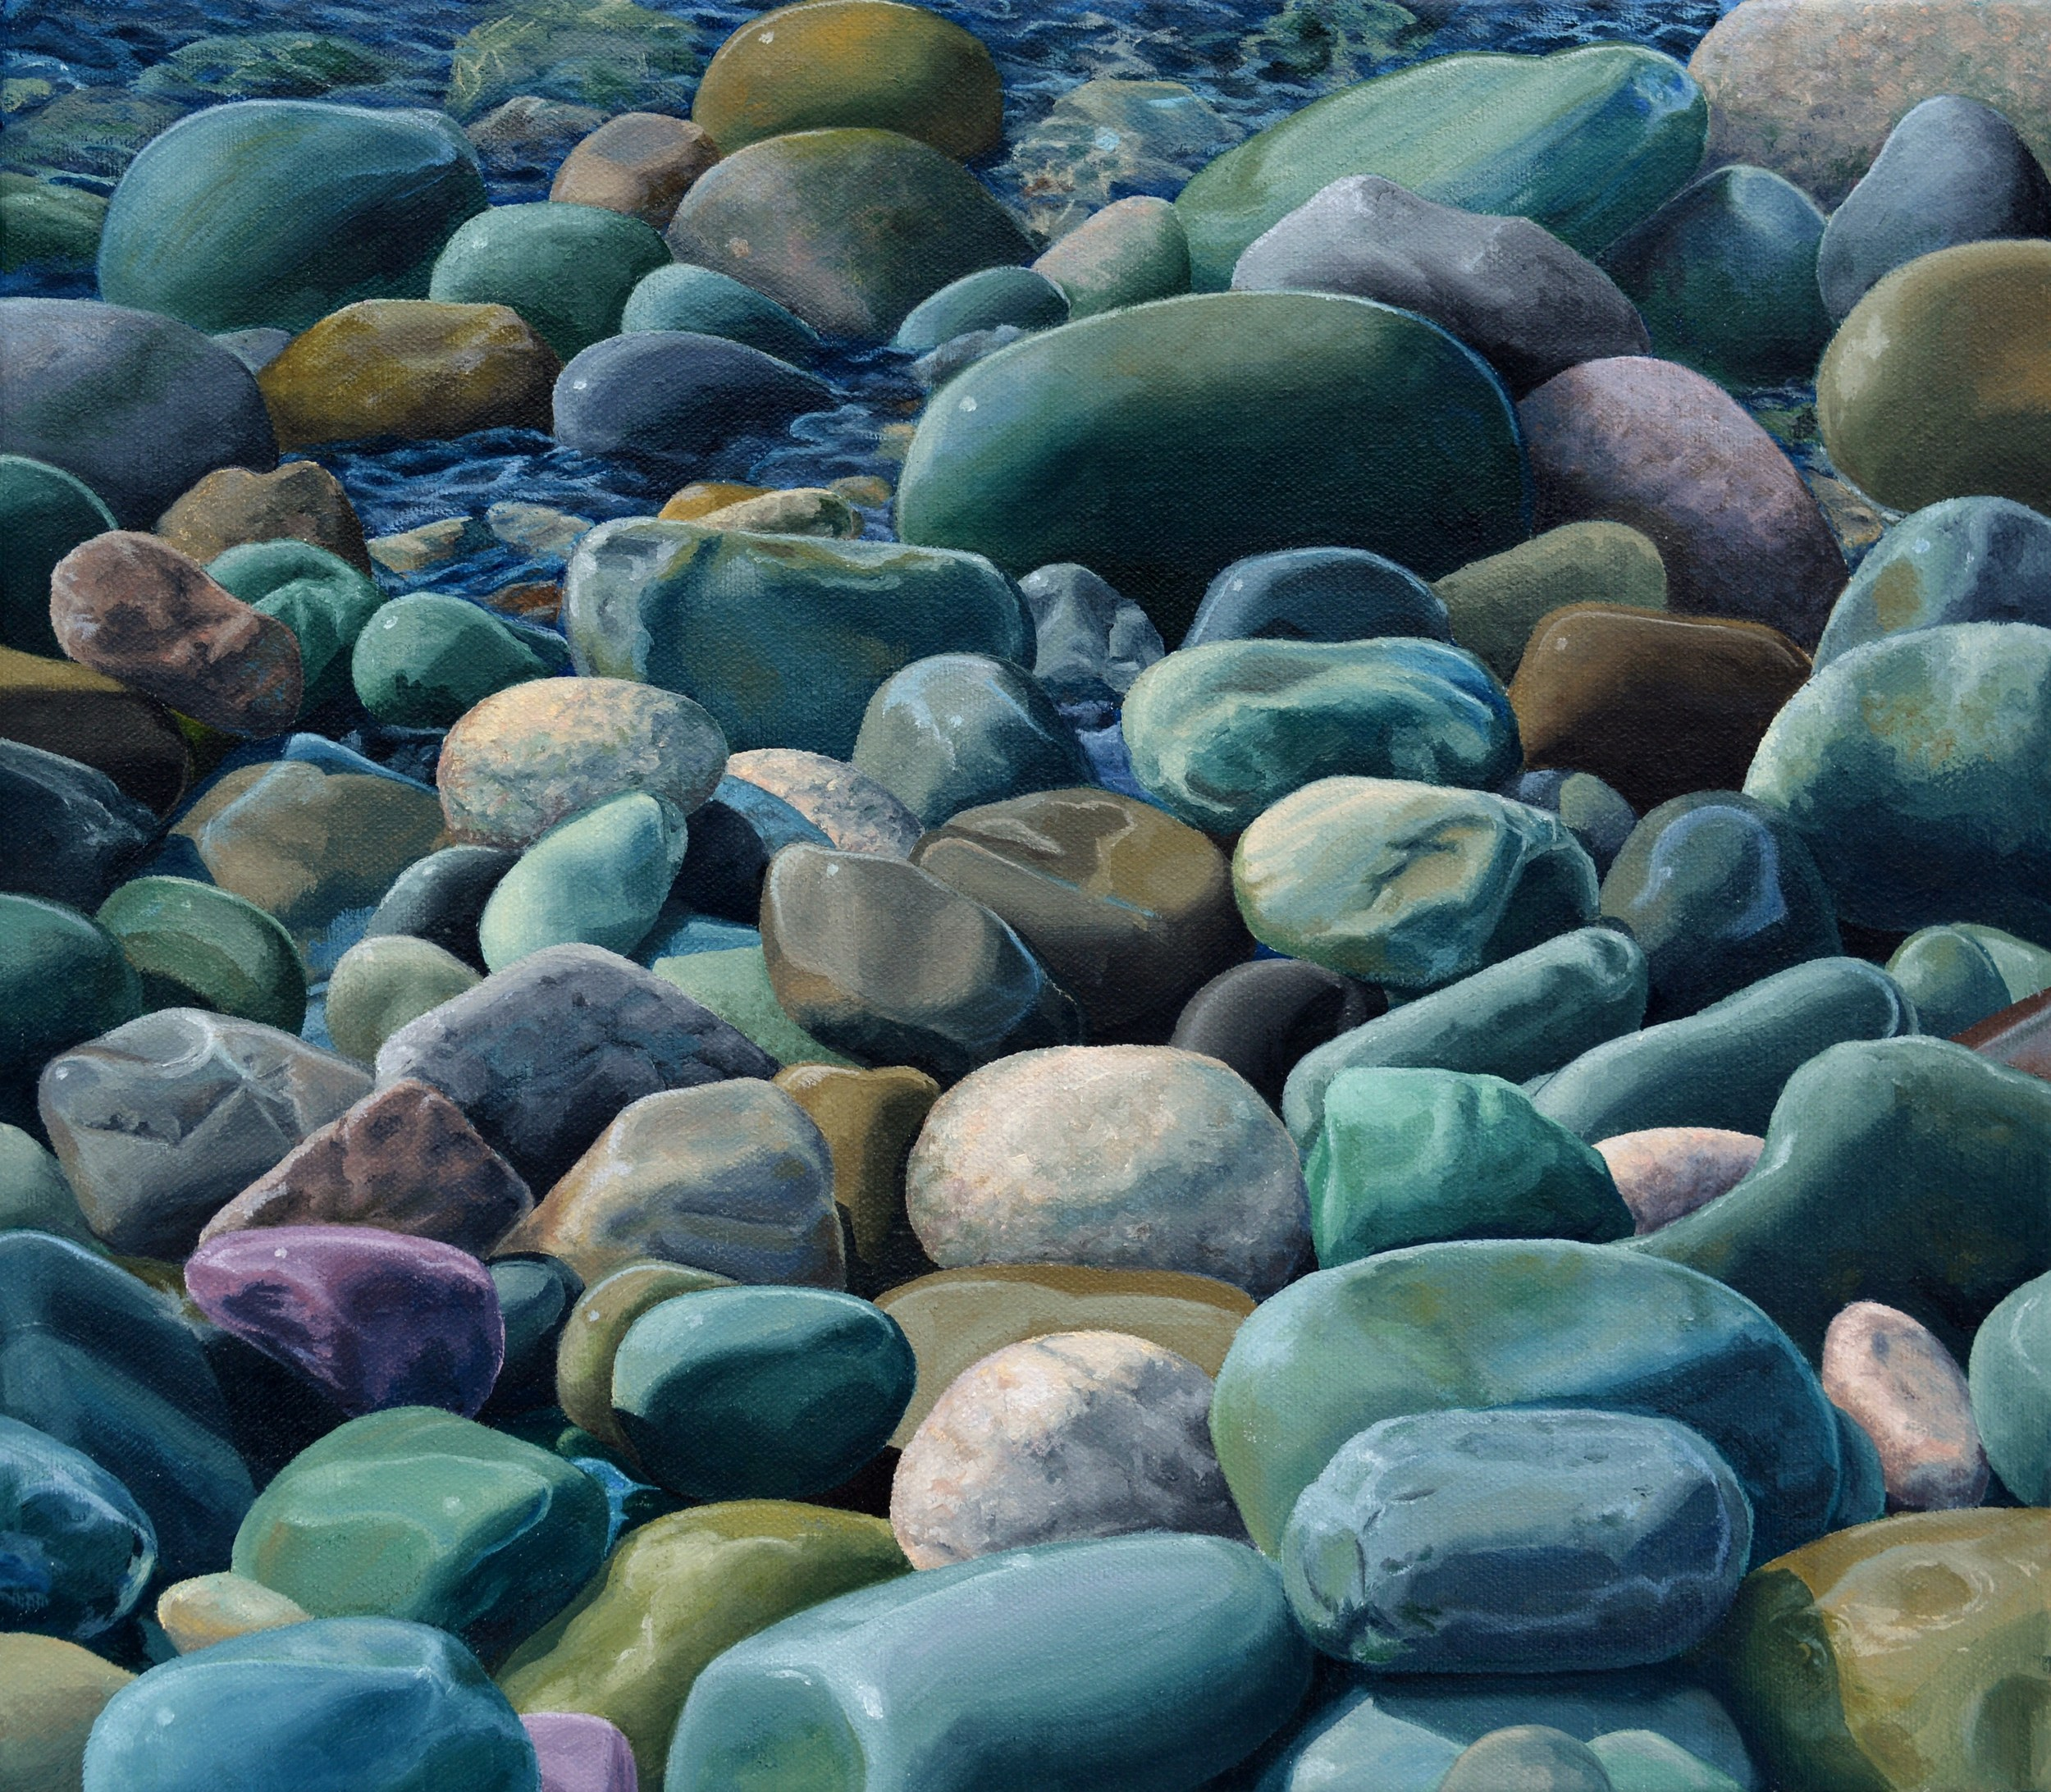 Smooth Stones, 14x16, Oil on Canvas